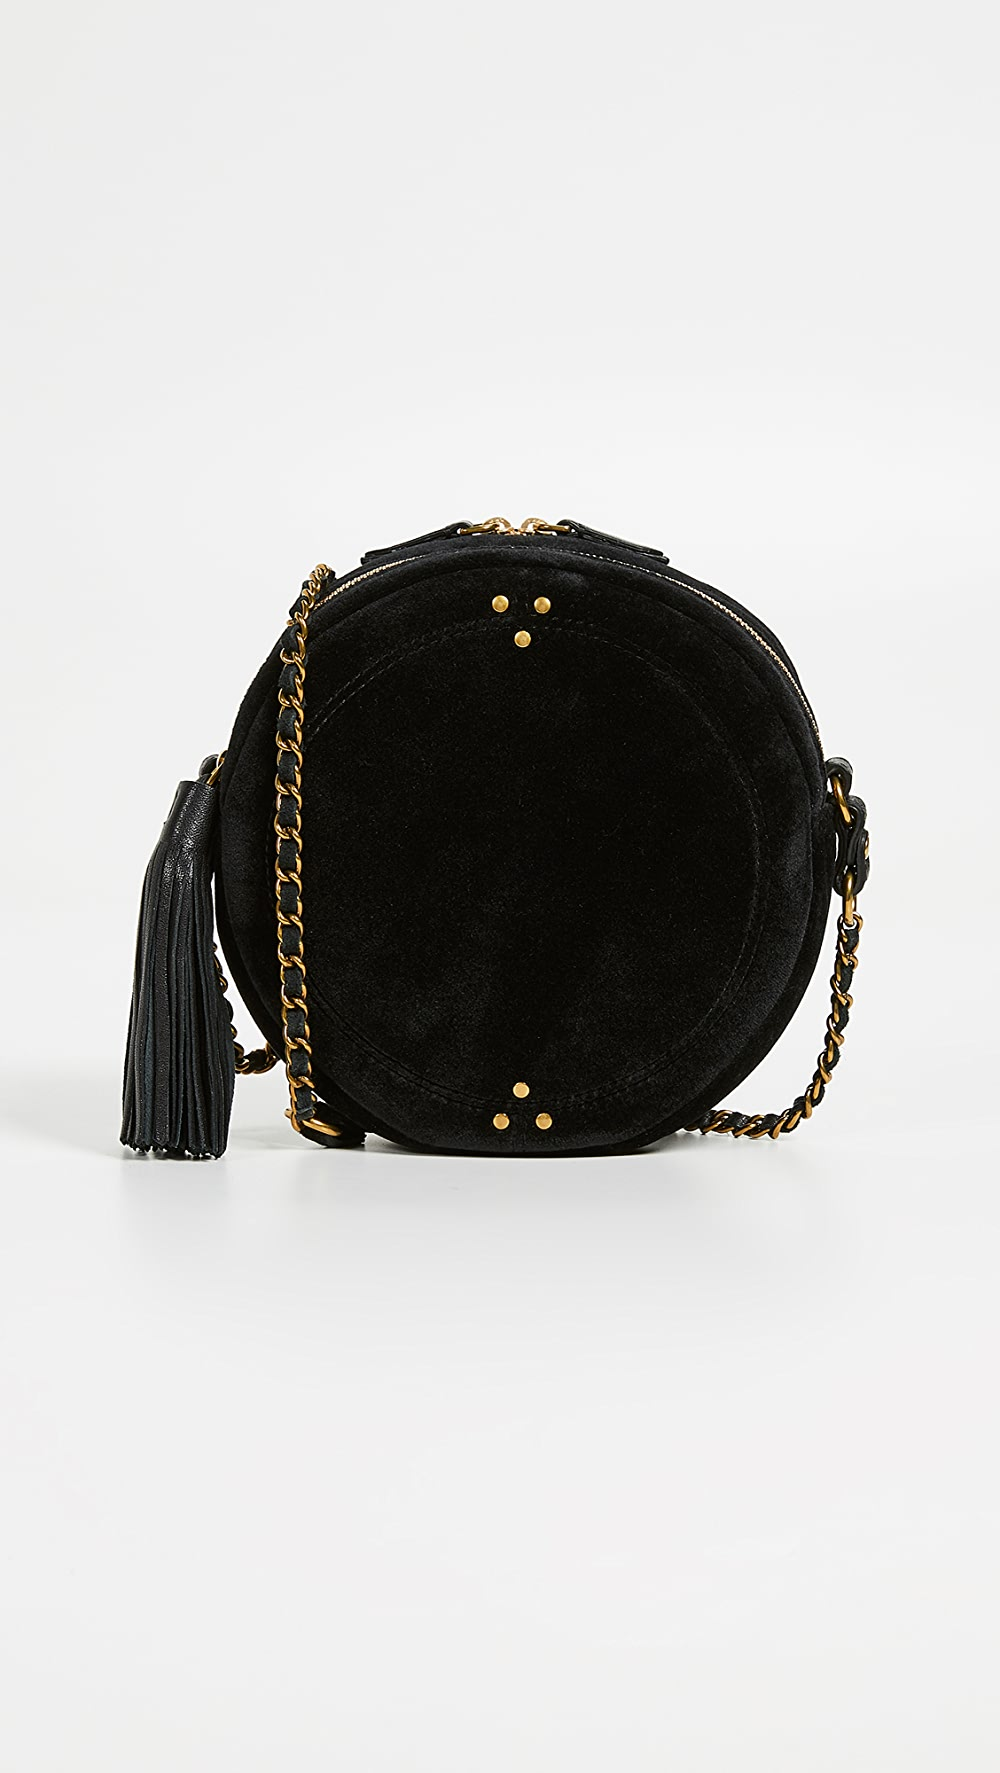 Intellective Jerome Dreyfuss - Remi Circle Crossbody Bag Excellent (In) Quality